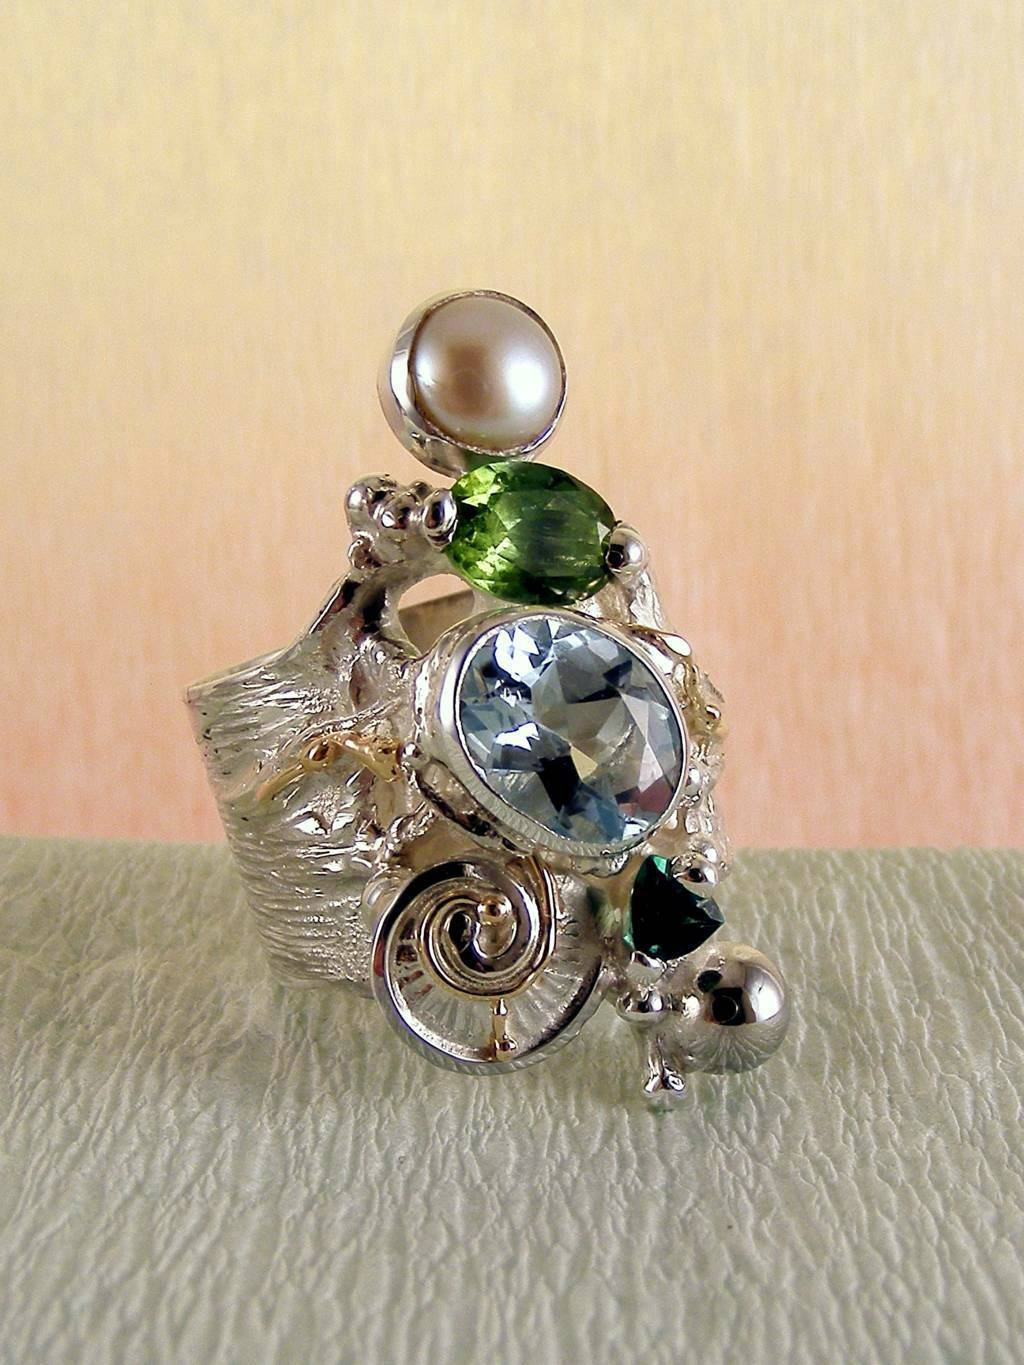 Ring with Tourmaline #1441, Original Handcrafted, Sterling Silver and Gold, Tourmaline, Peridot, Blue Topaz, Pearl